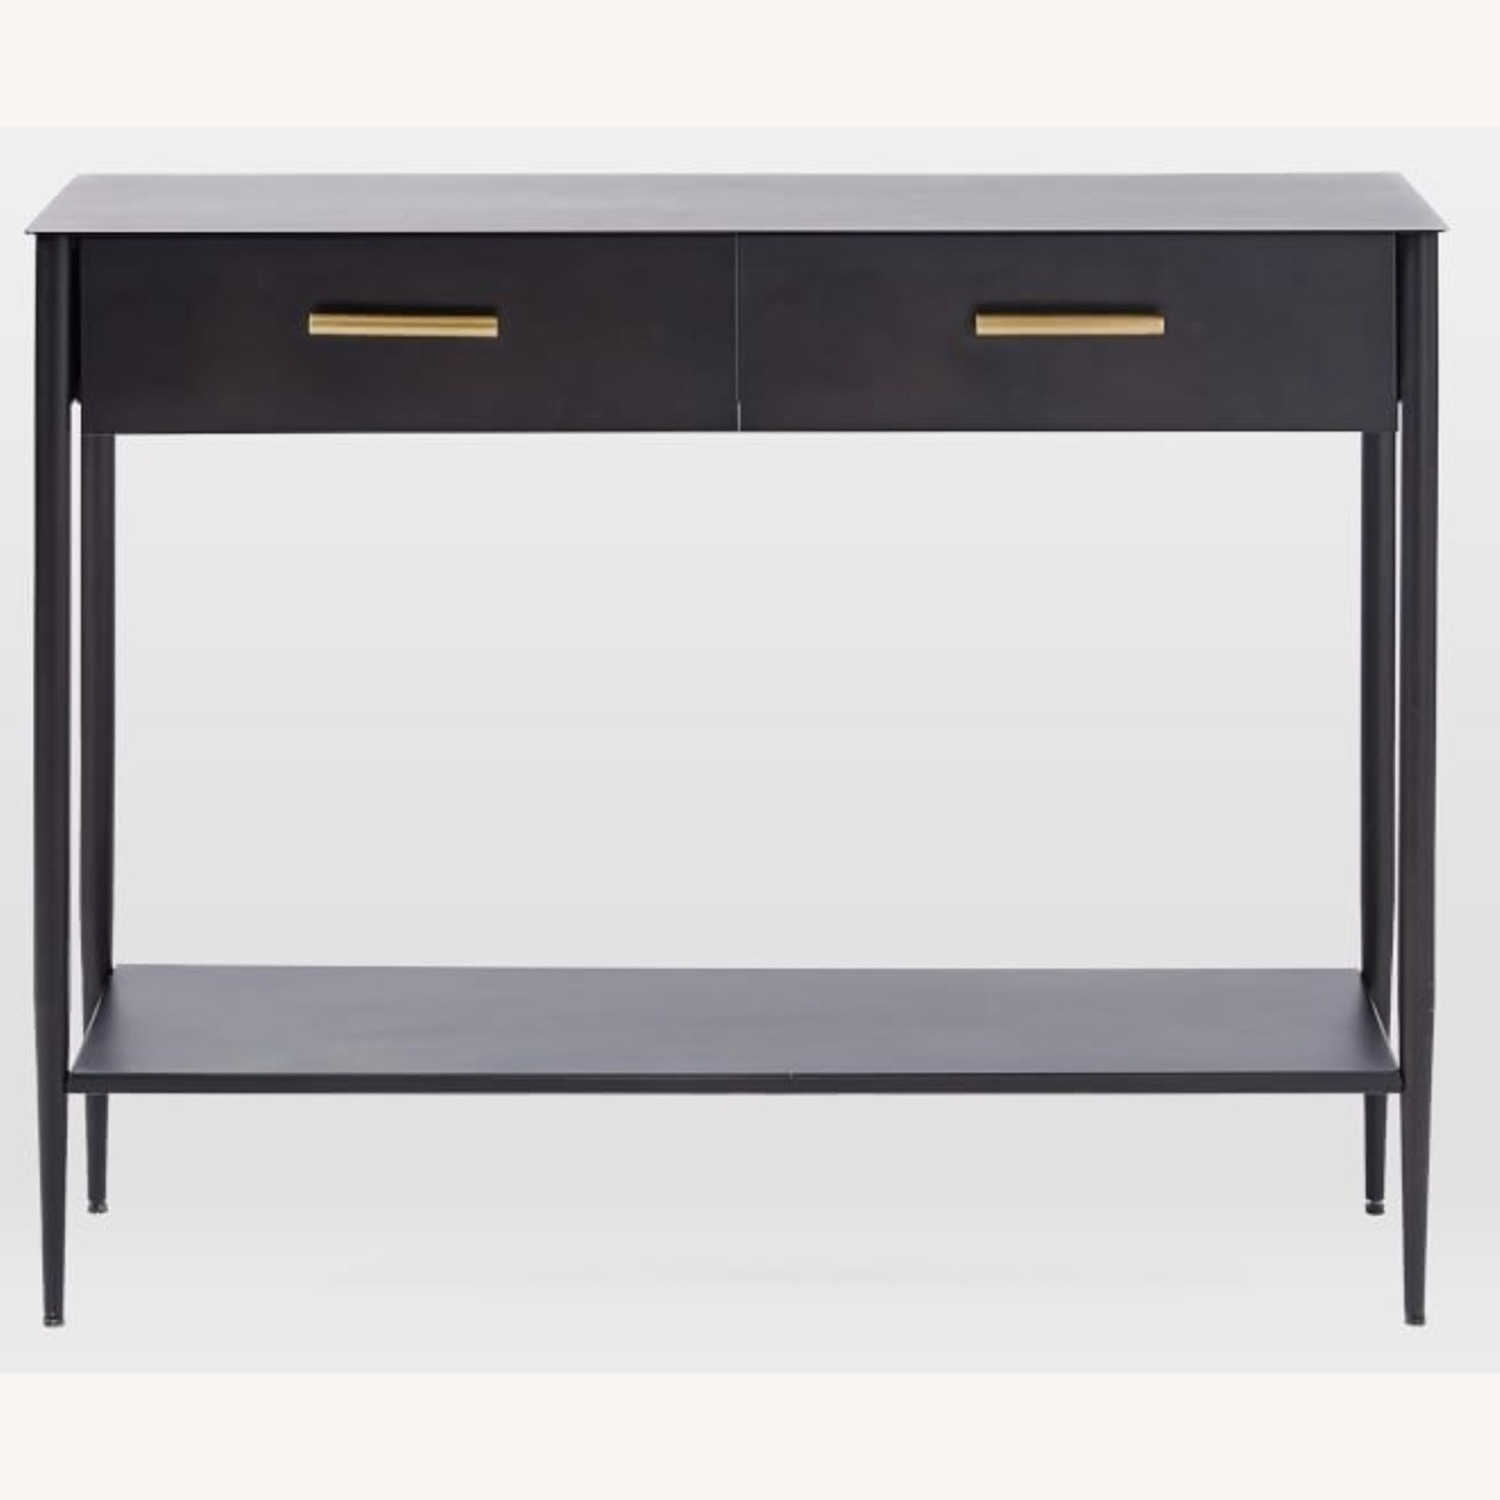 West Elm Metalwork Console Table - image-4